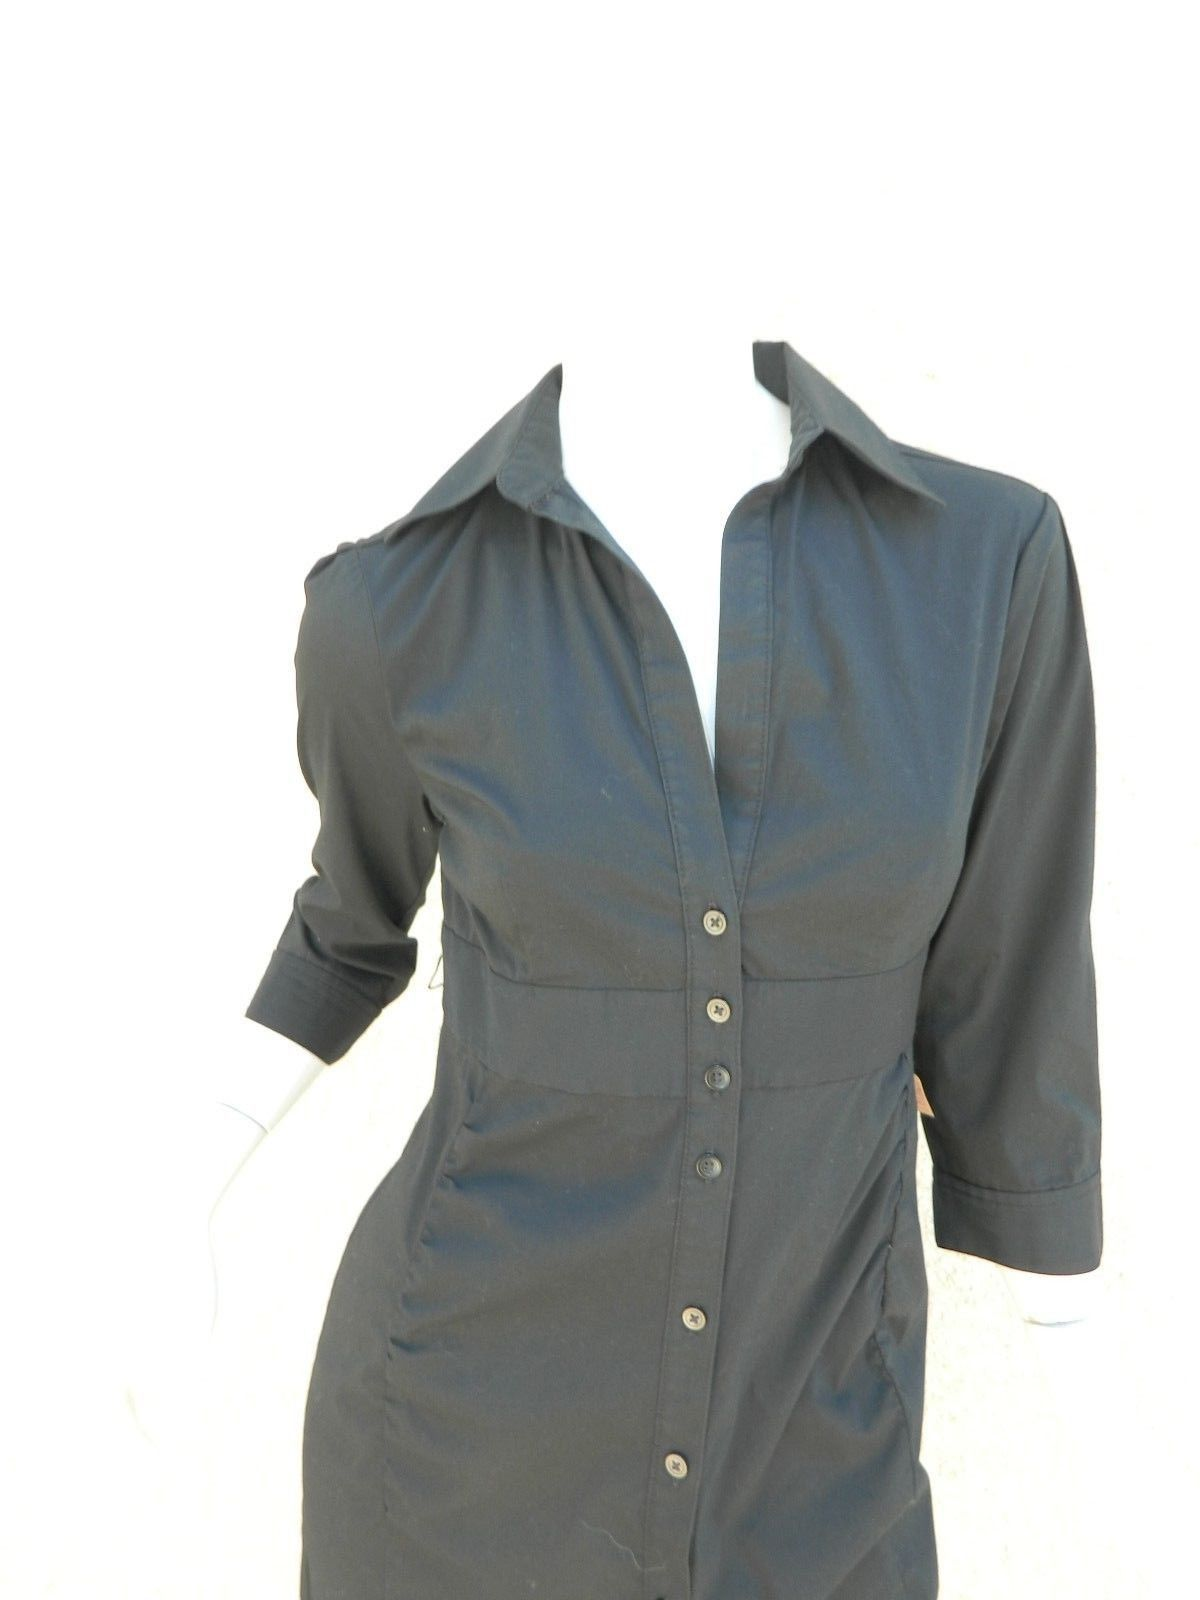 EXPRESS Dress Navy Blue Classic Shirt 3/4 Sleeve Dress Workwear Career Sz 6 image 5